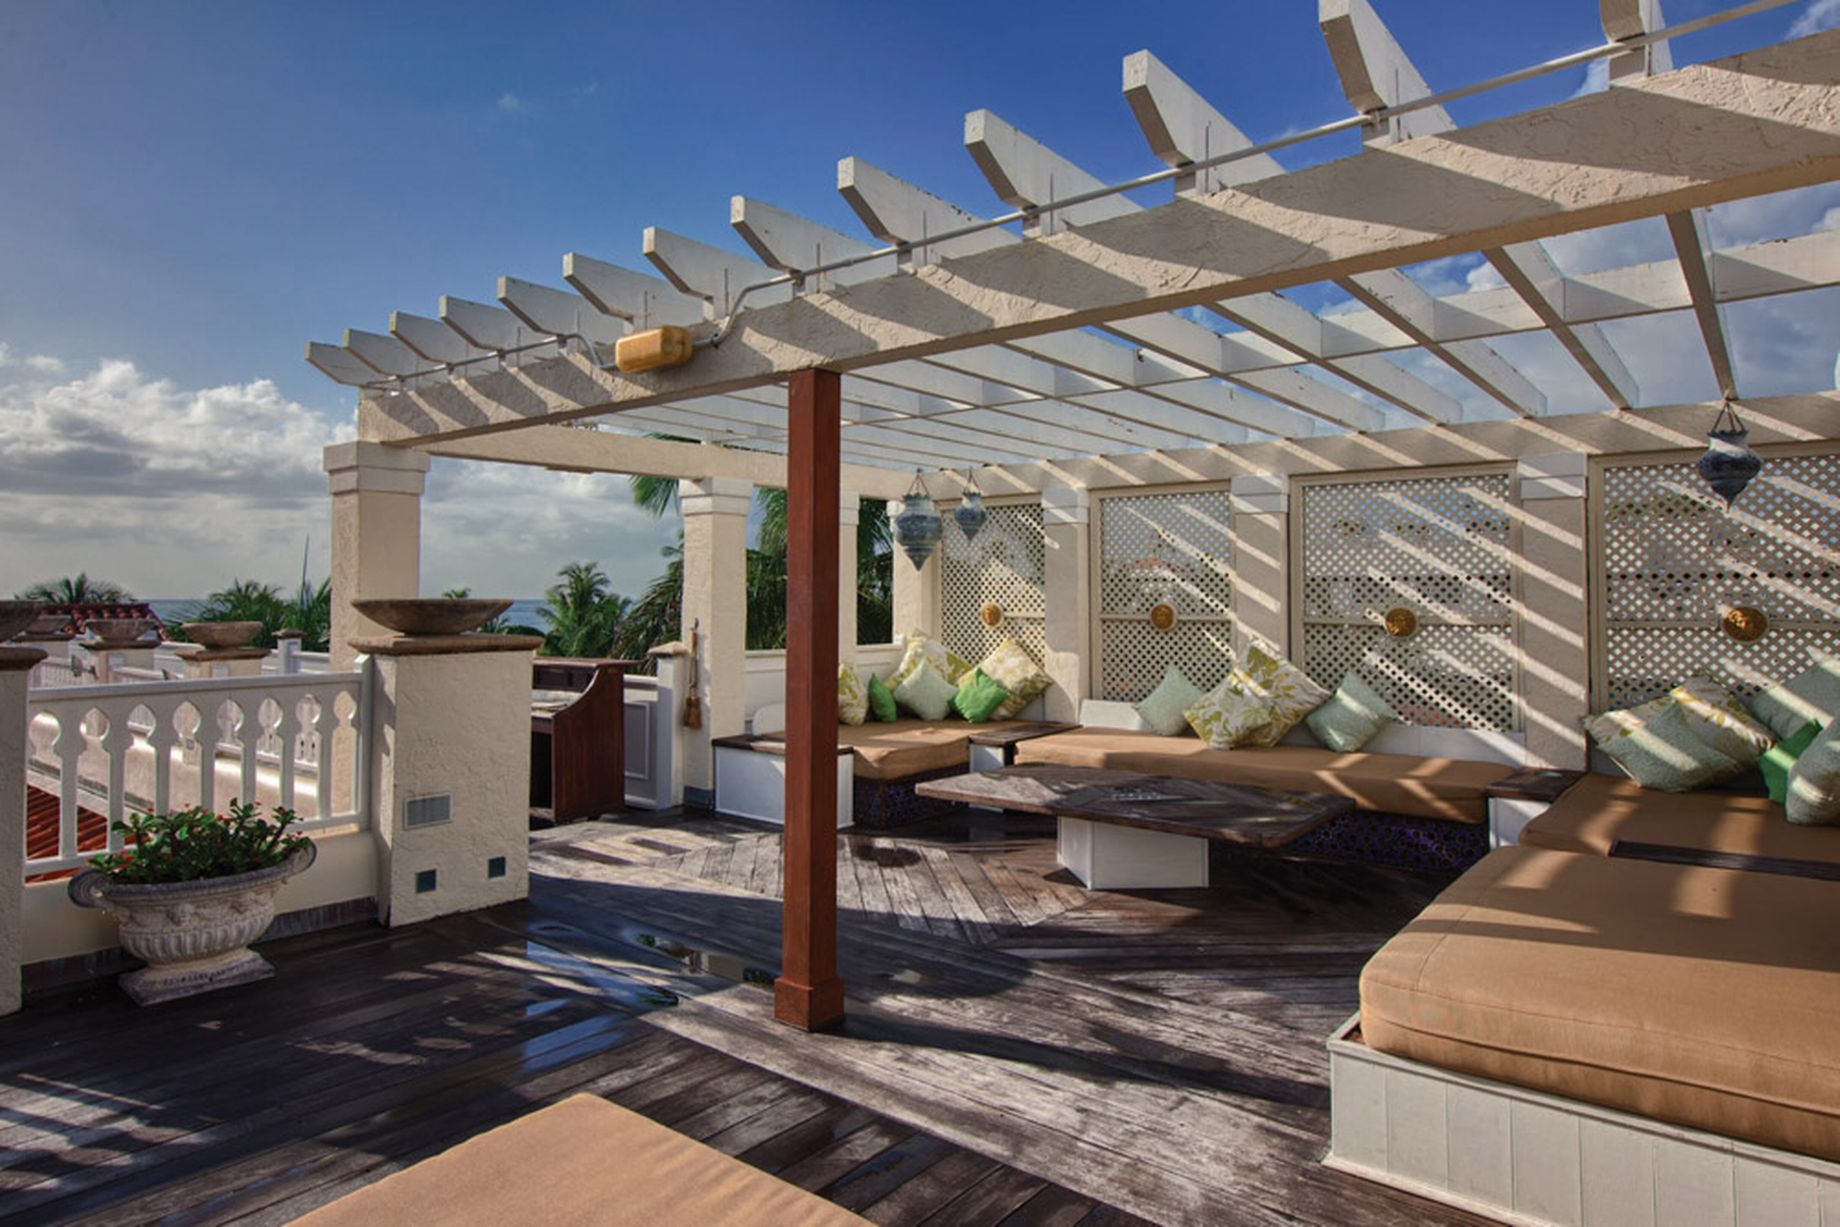 Gianni-Versace-Casa-Casuarina-Daytime-View-from-the-Rooftop-Terrace-Seats